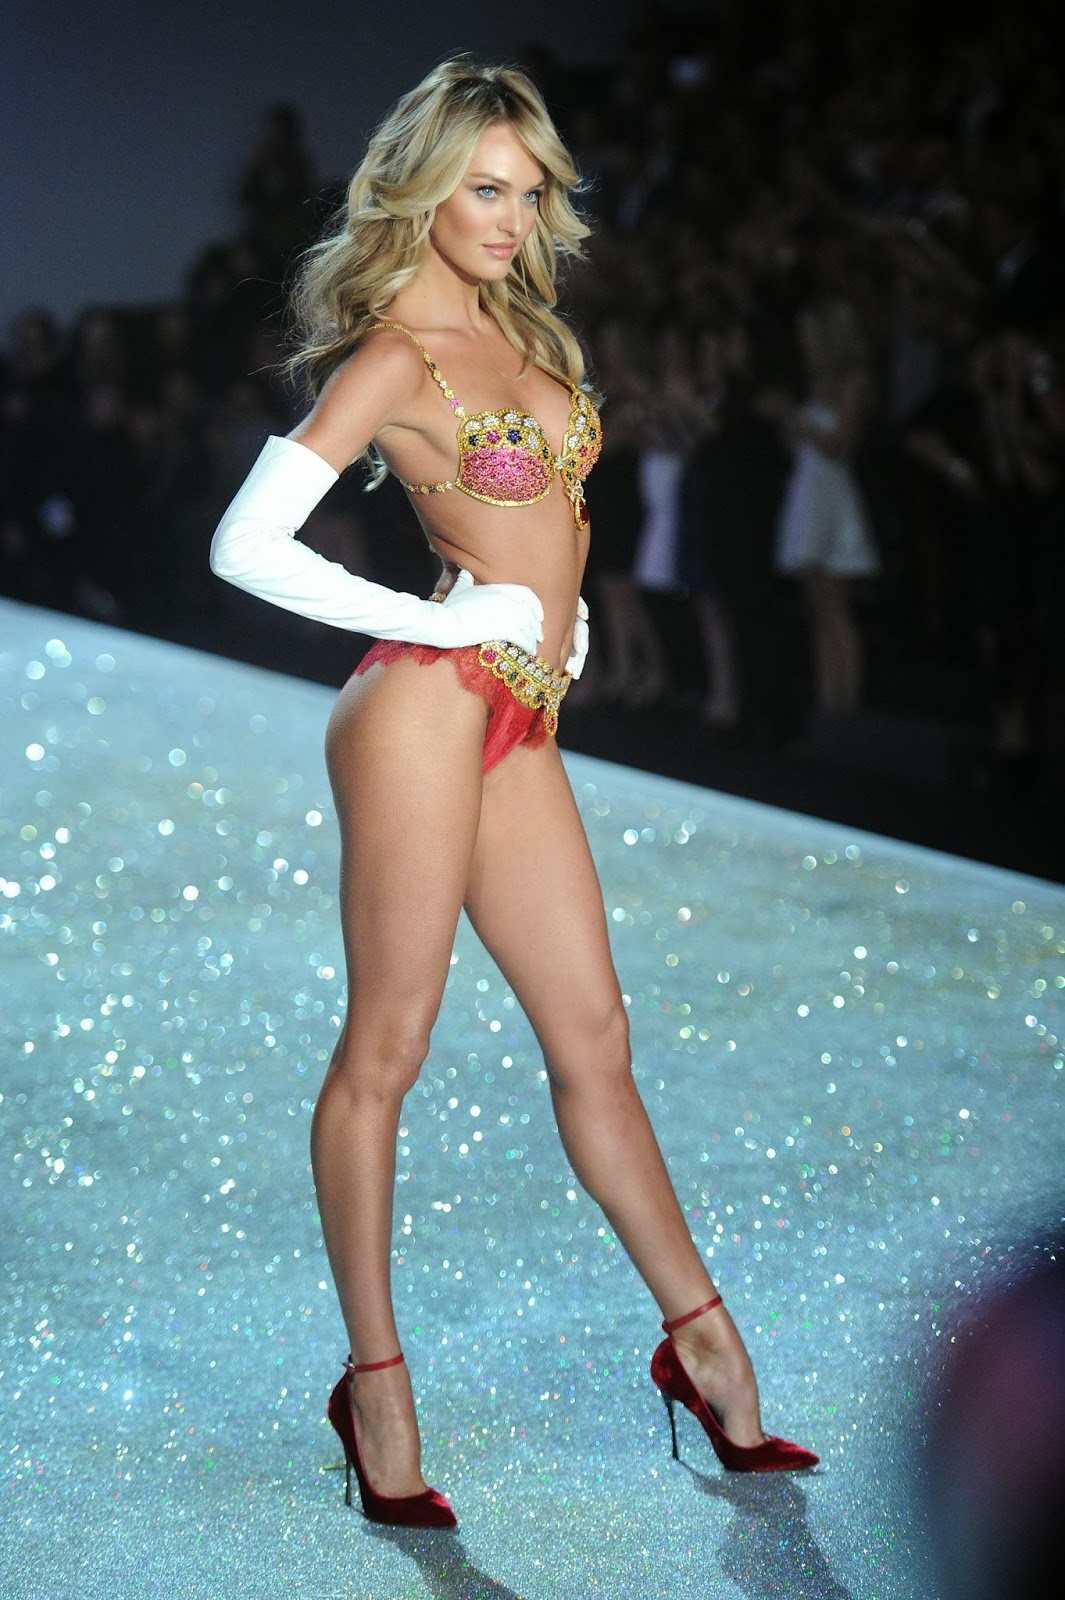 Candice Swanepoel Victoria 39 S Secret Fashion Show 2013 Magazine Photoshoot Actress Models